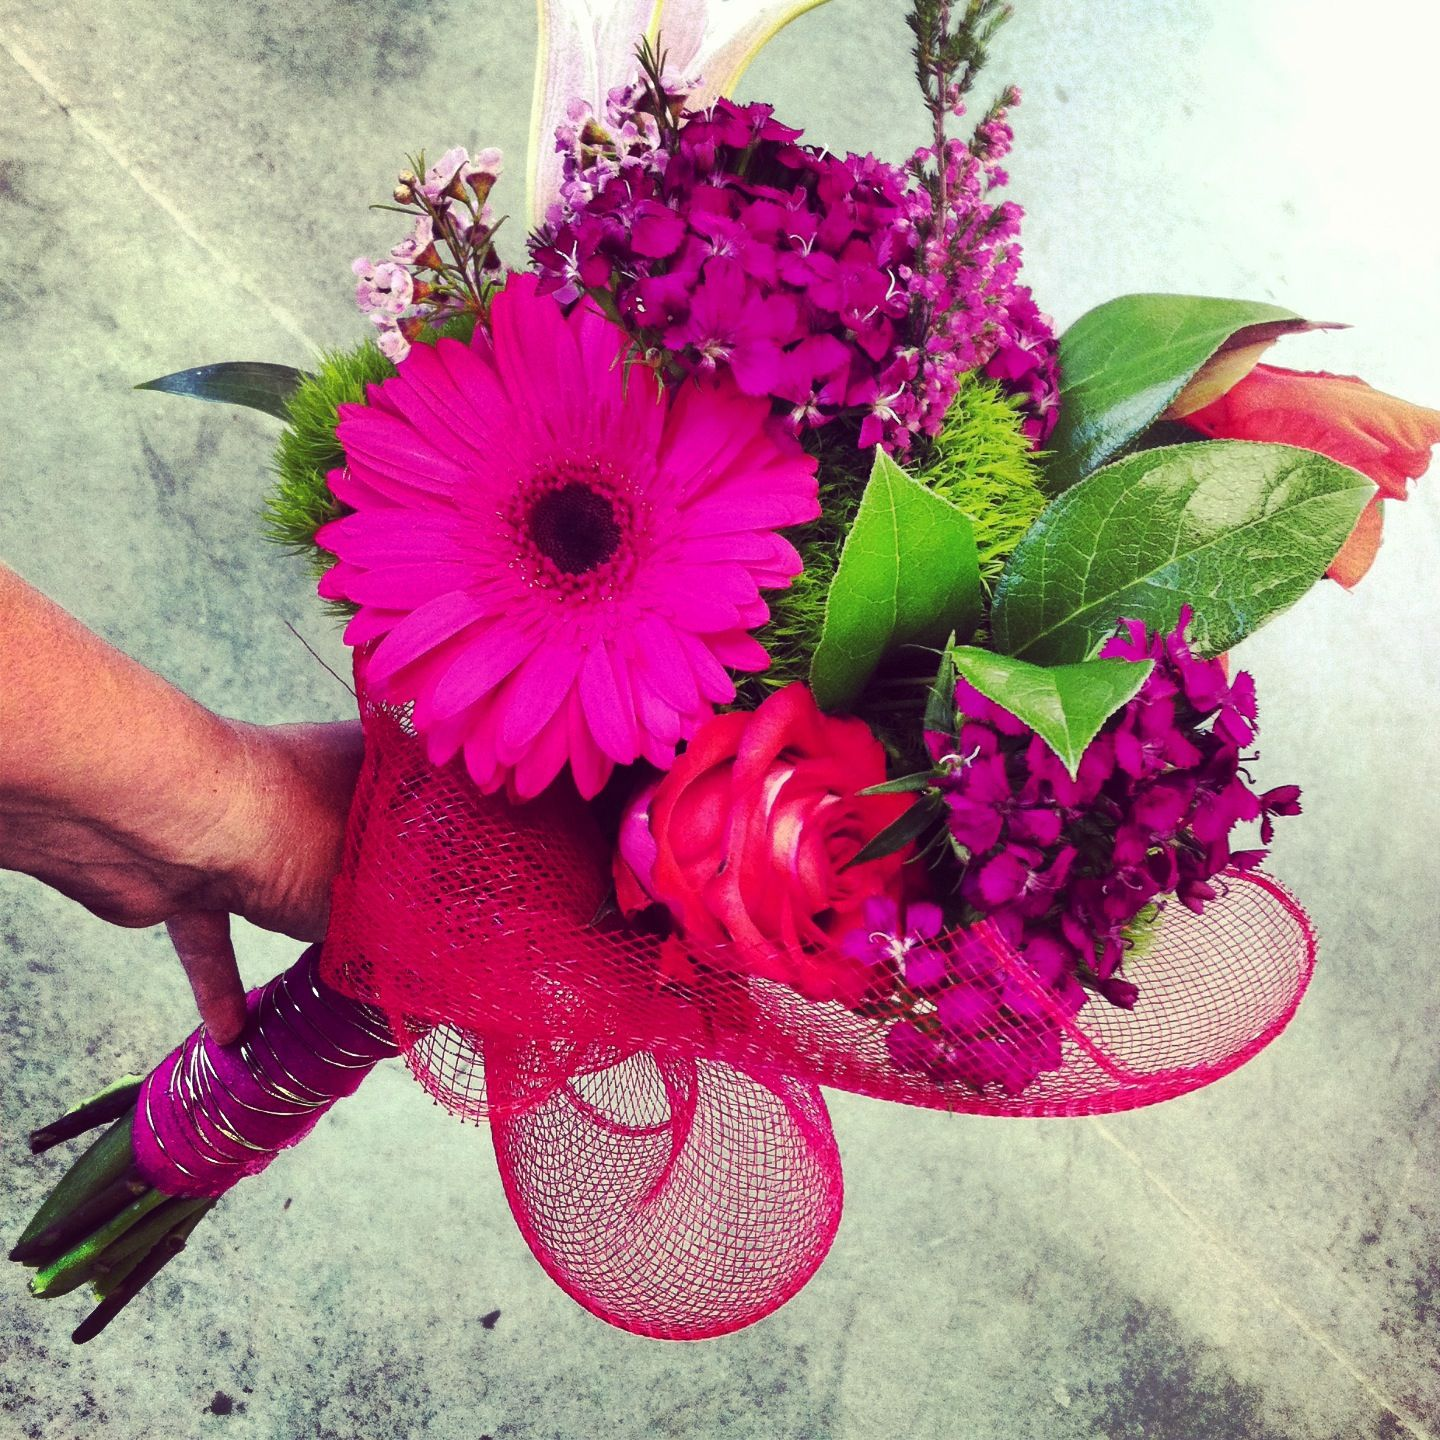 Fuchsia Wedding Flowers: Neon Bridal Bouquet With Deco Mesh: Coral And Fuchsia